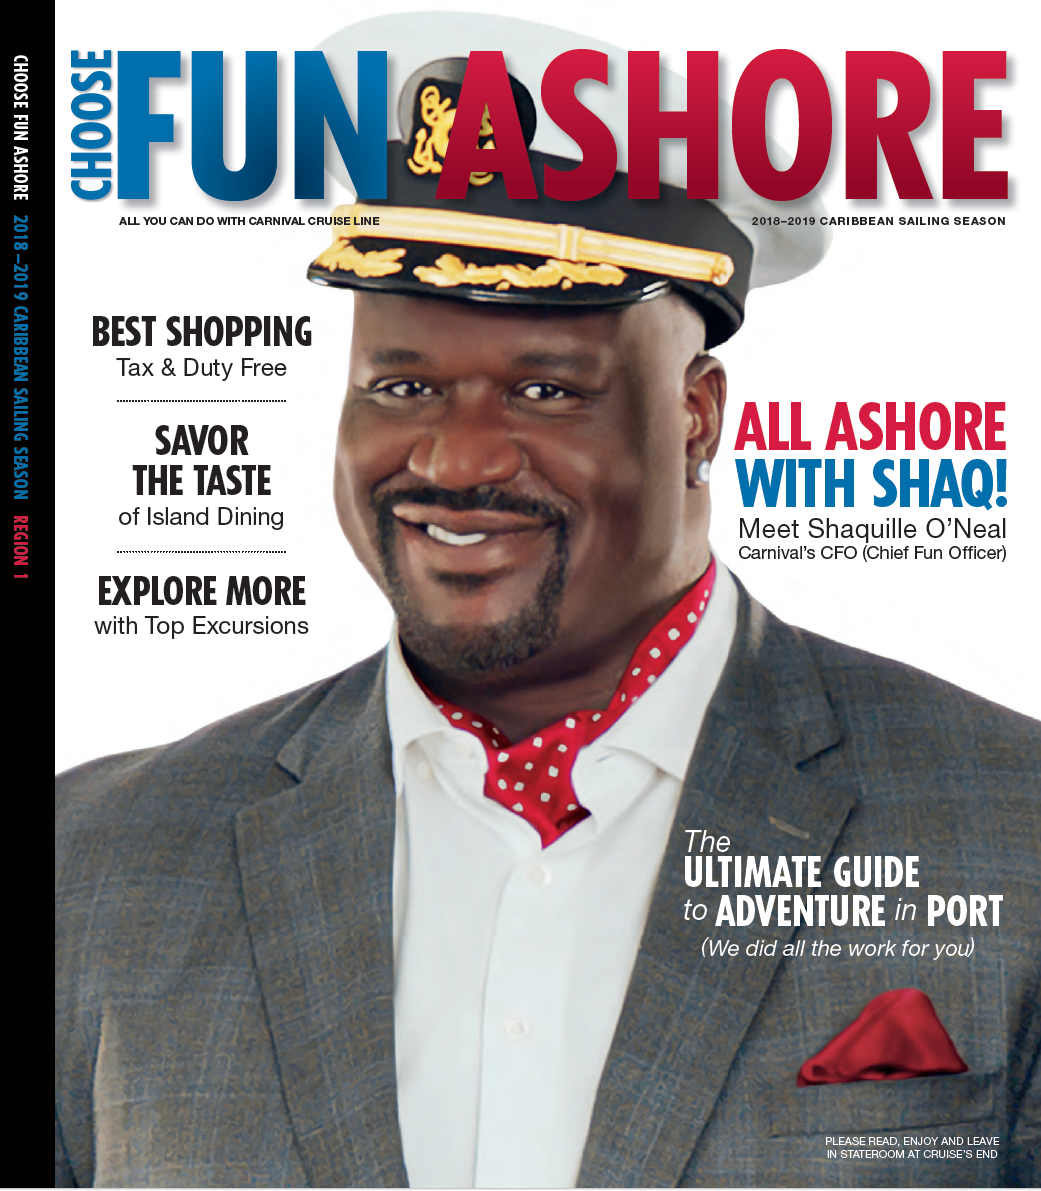 Client: Onboard Media / Carnival Cruise Line. Click image for digital version.